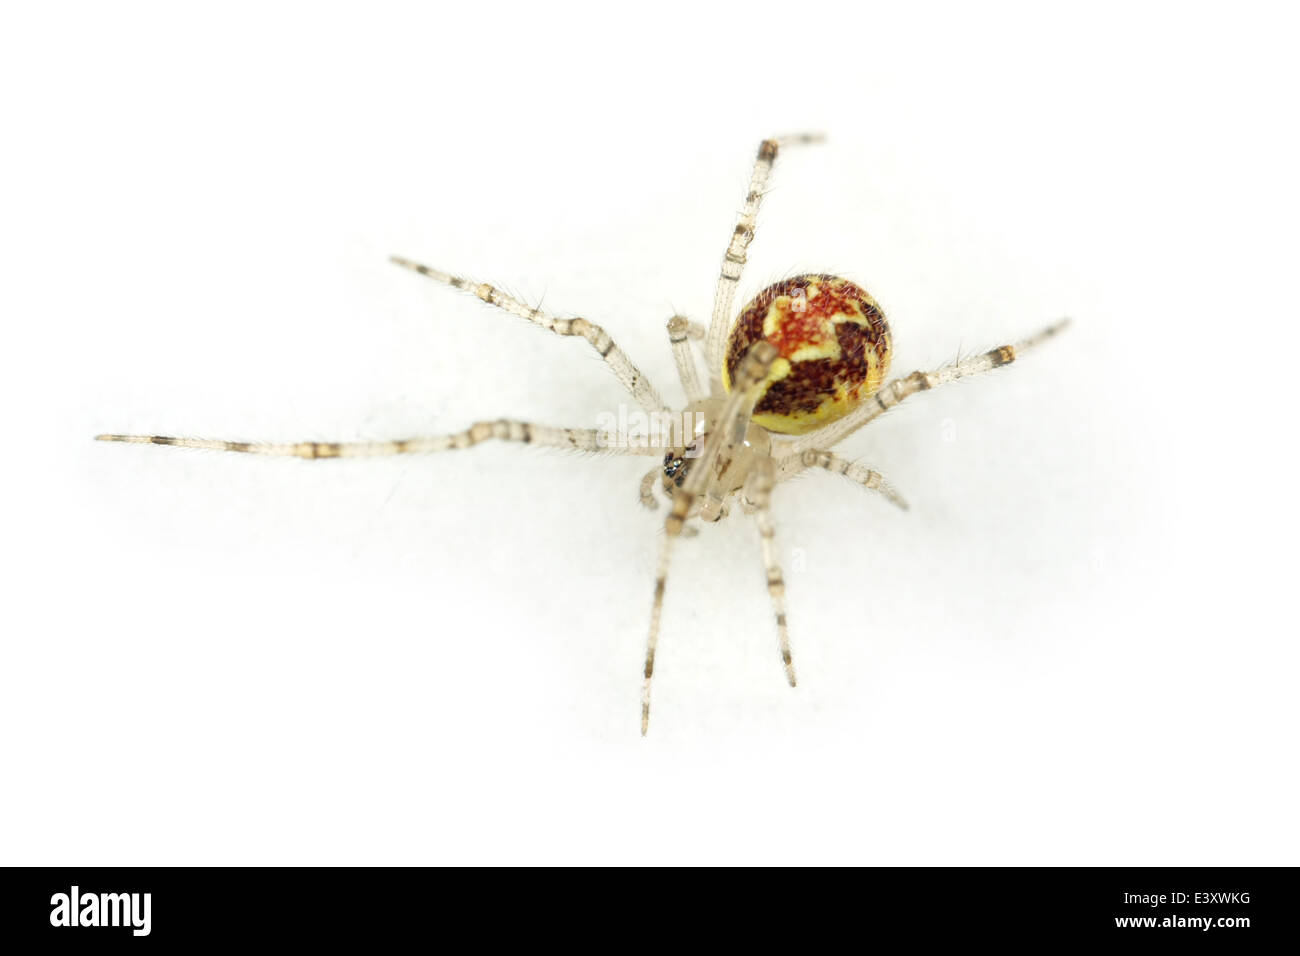 Female Theridion varians spider, part of the family  -  spiders. Isolated on white background. - Stock Image